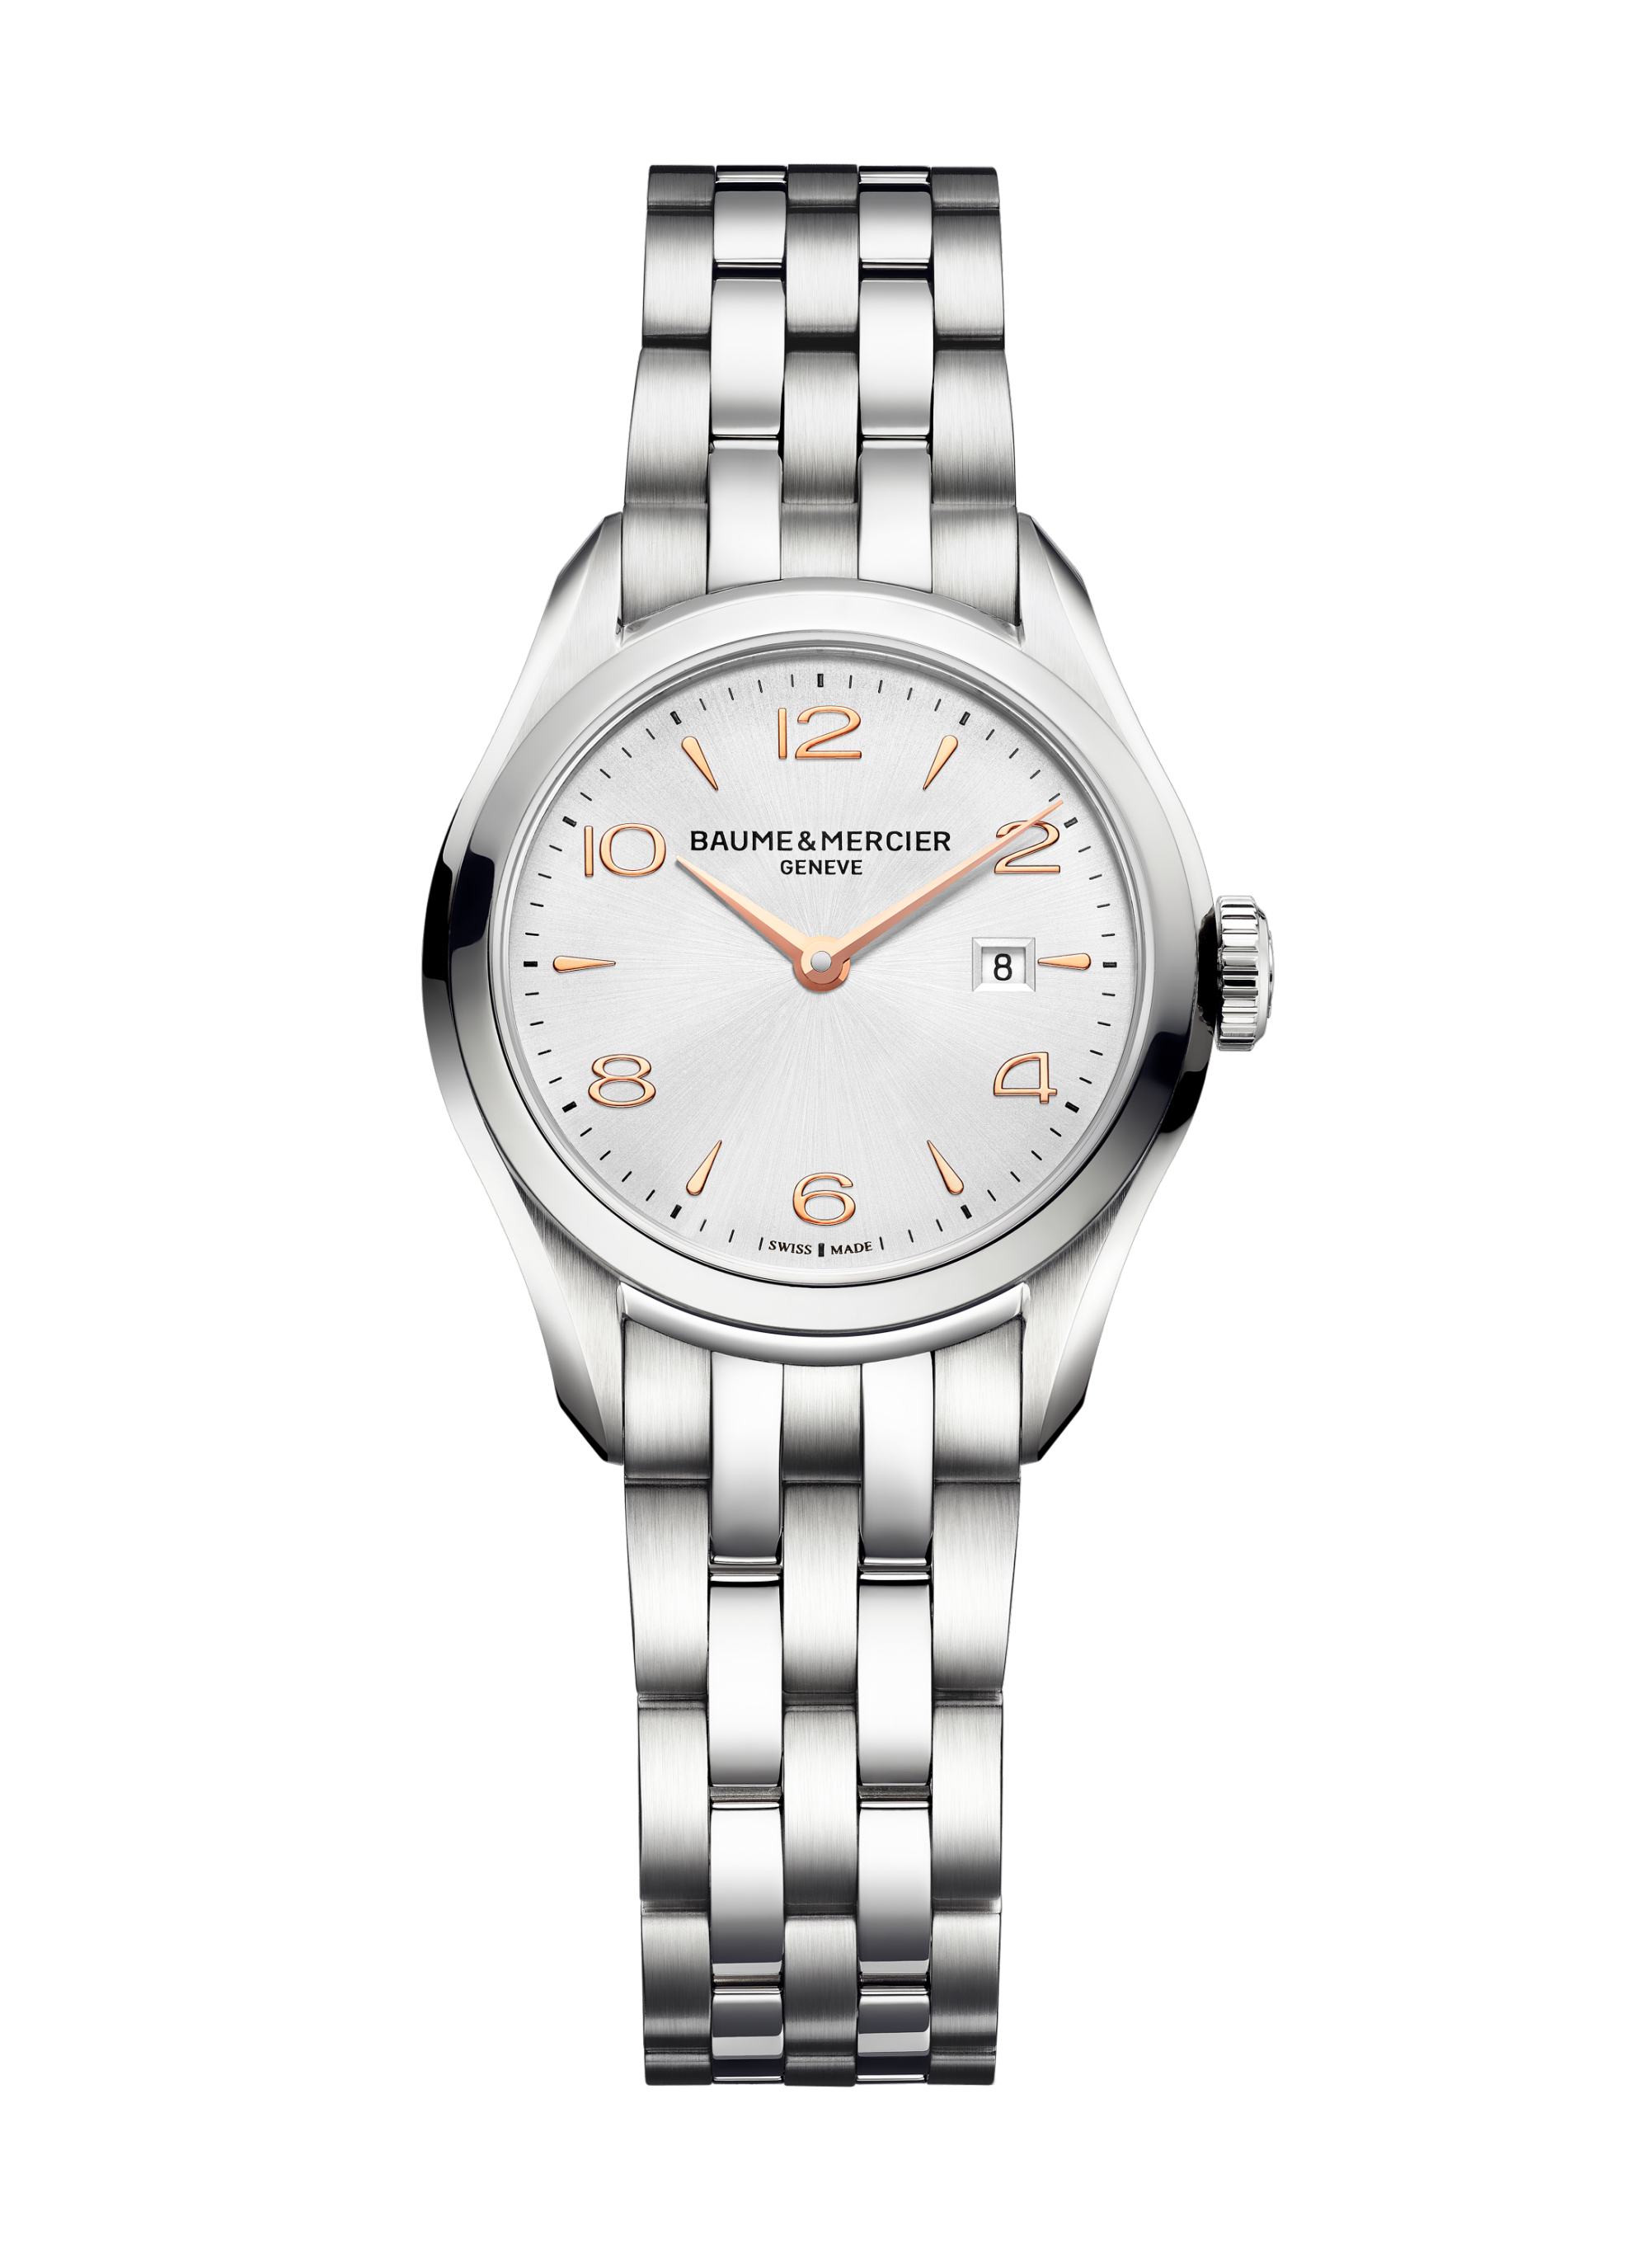 名士表(Baume & Mercier)Clifton 10175 女士腕表 null null